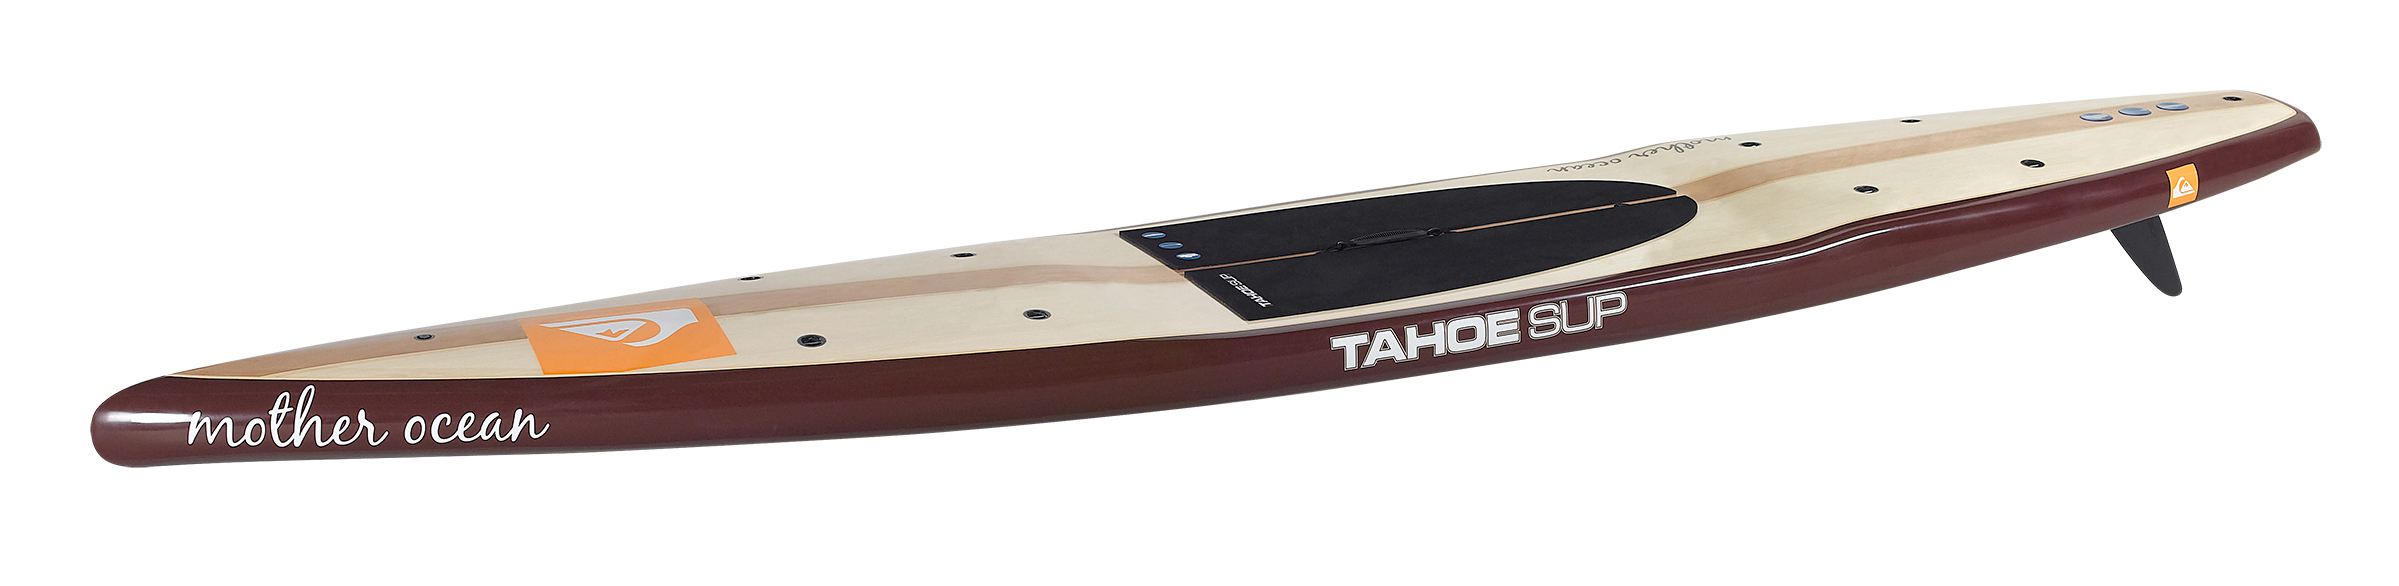 Tahoe_14_TALLAC_Mother_Ocean_Expedition_500_profile_munich_sup_less_w_1